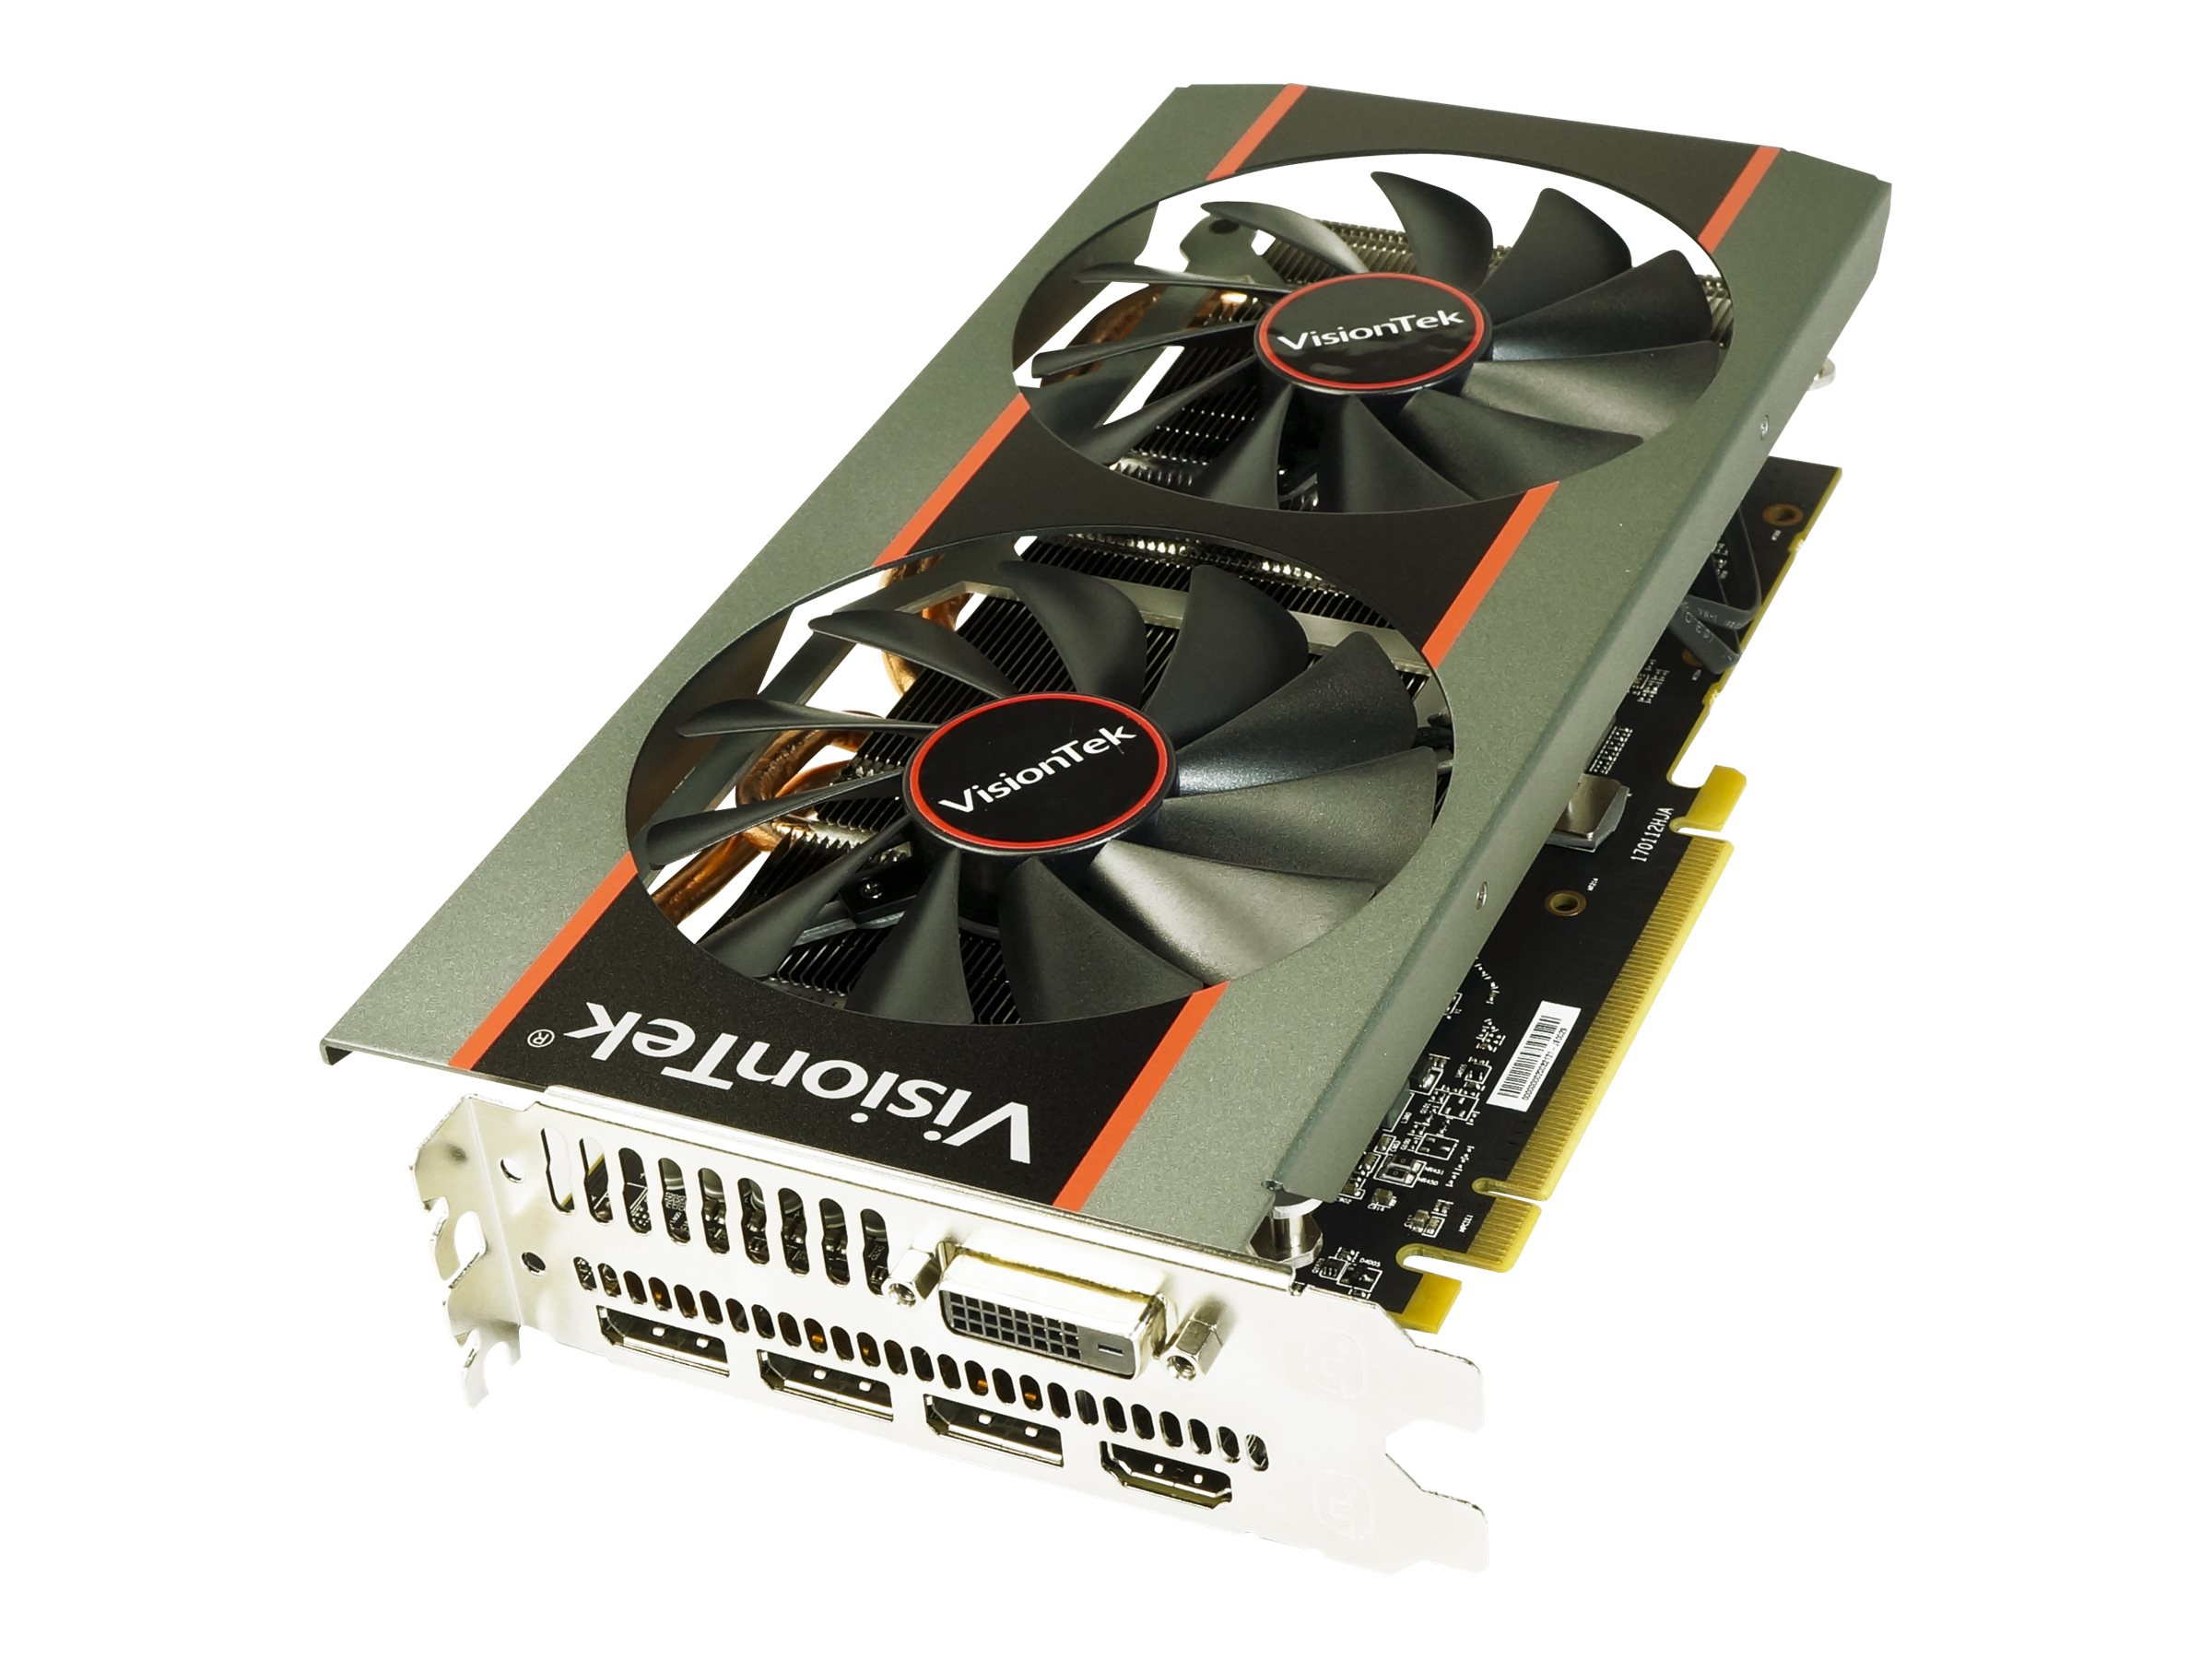 VisionTek Radeon RX 580 PCIe x16 Overclocked Graphics Card, 8GB GDDR5, 900960